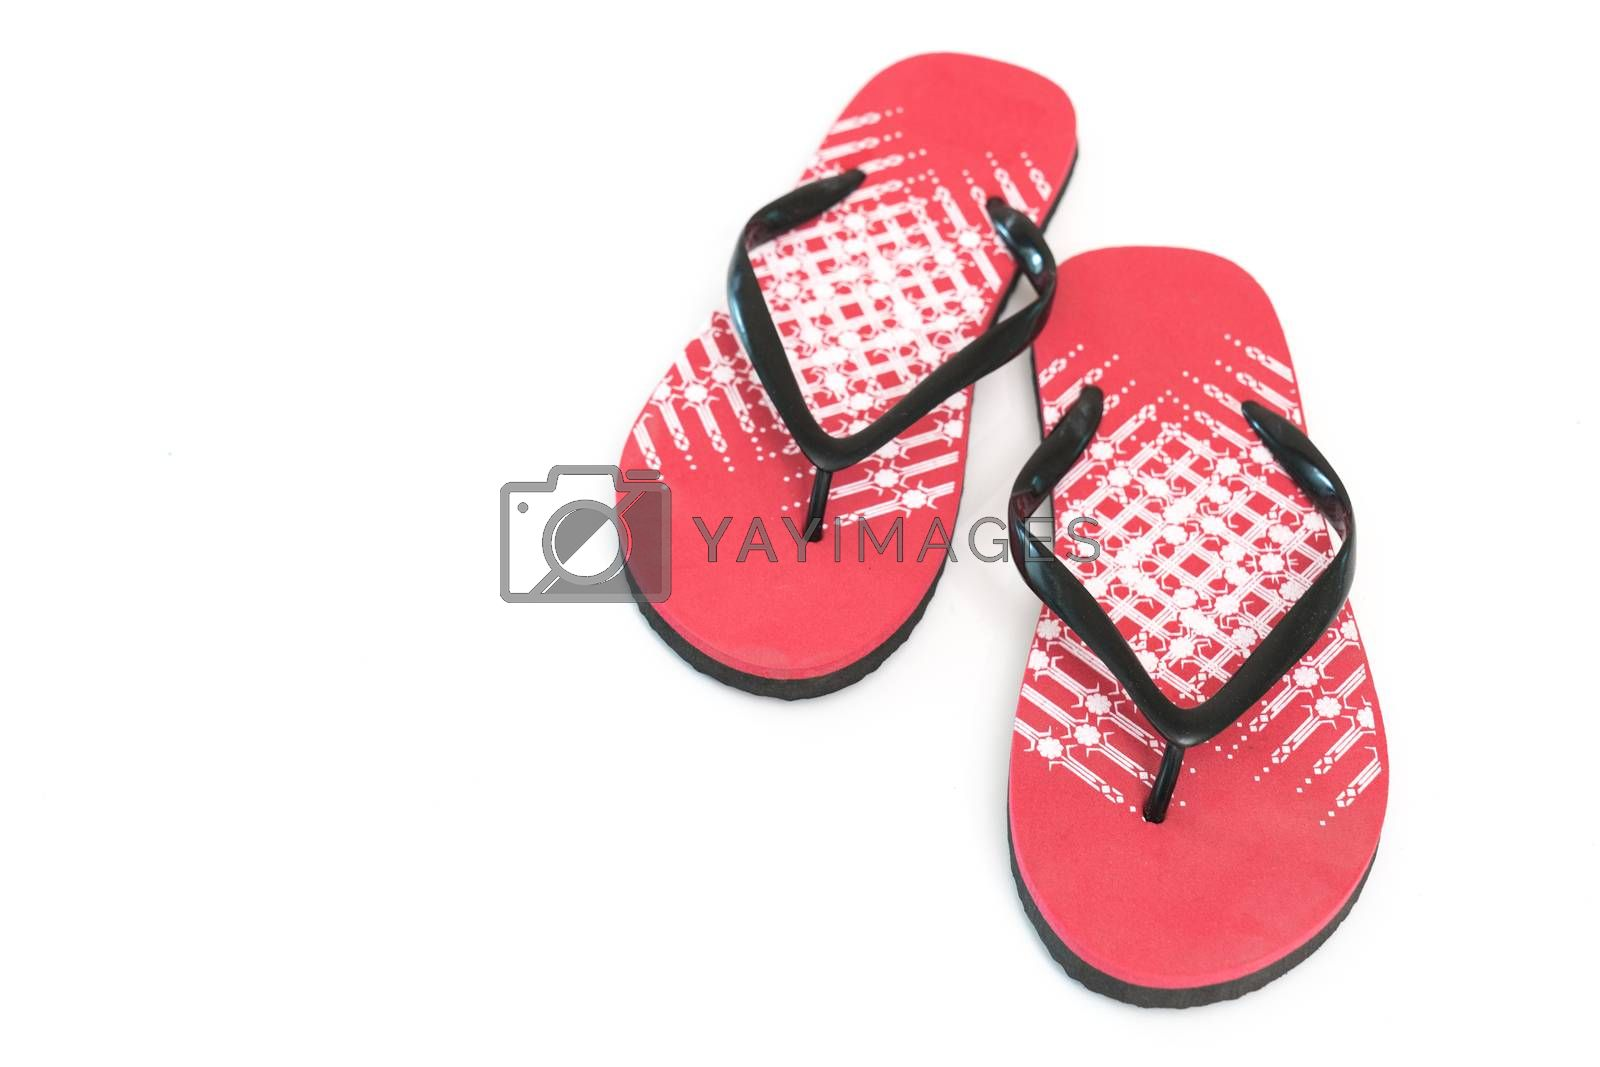 Red Flip Flops Featured on White Background Top View